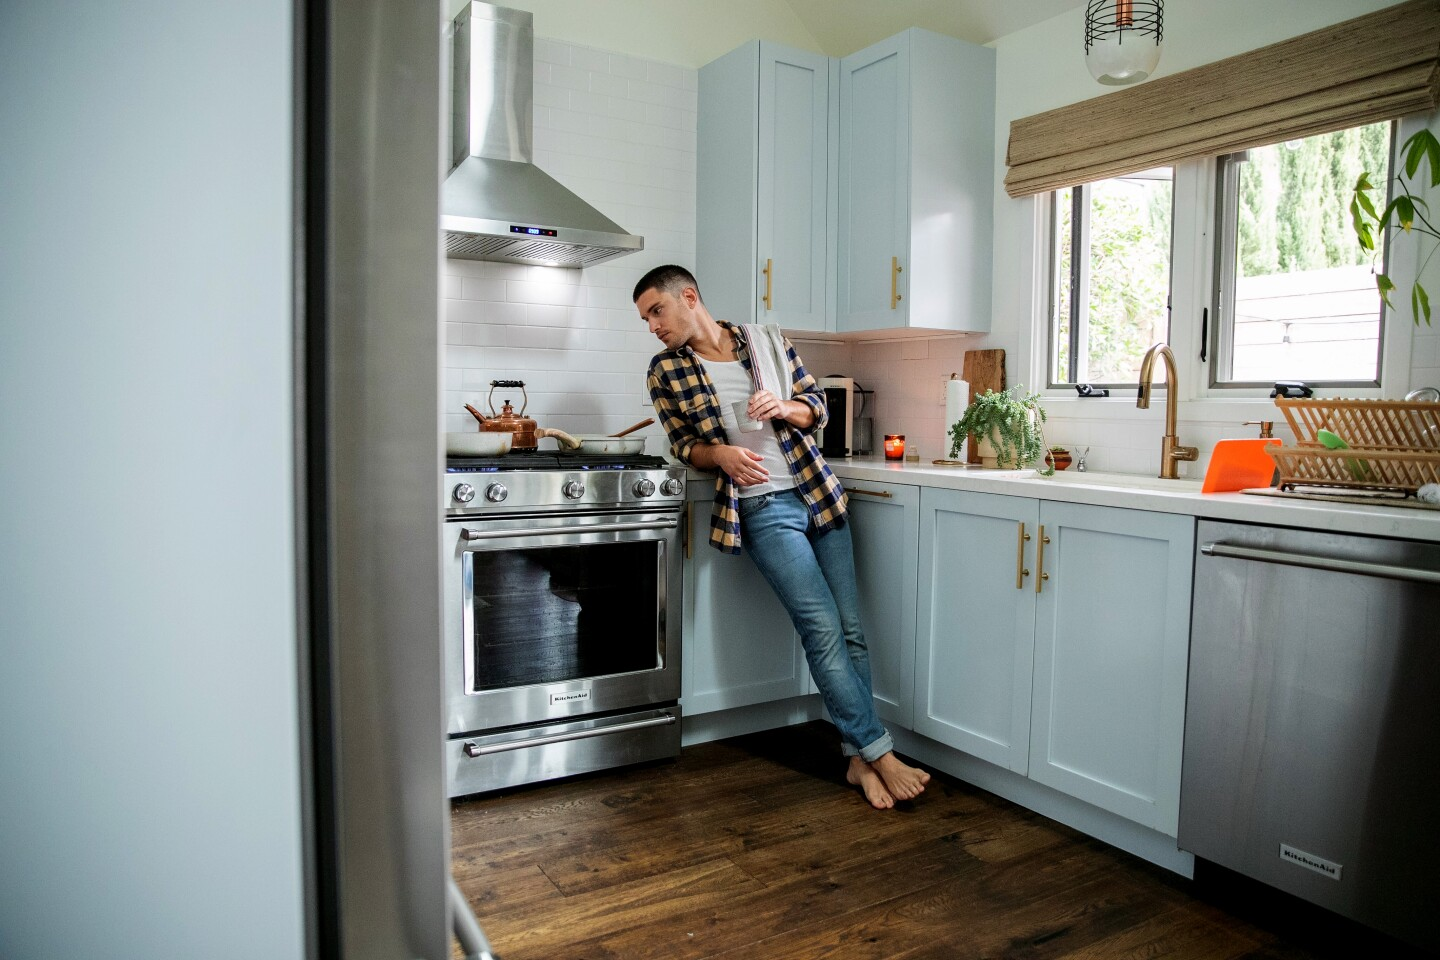 Actor Ronen Rubinstein finds that cooking in his light-filled kitchen helps him keep a positive attitude as he isolates at home. Photographed April 5, 2020. (Stephen LaMarche)